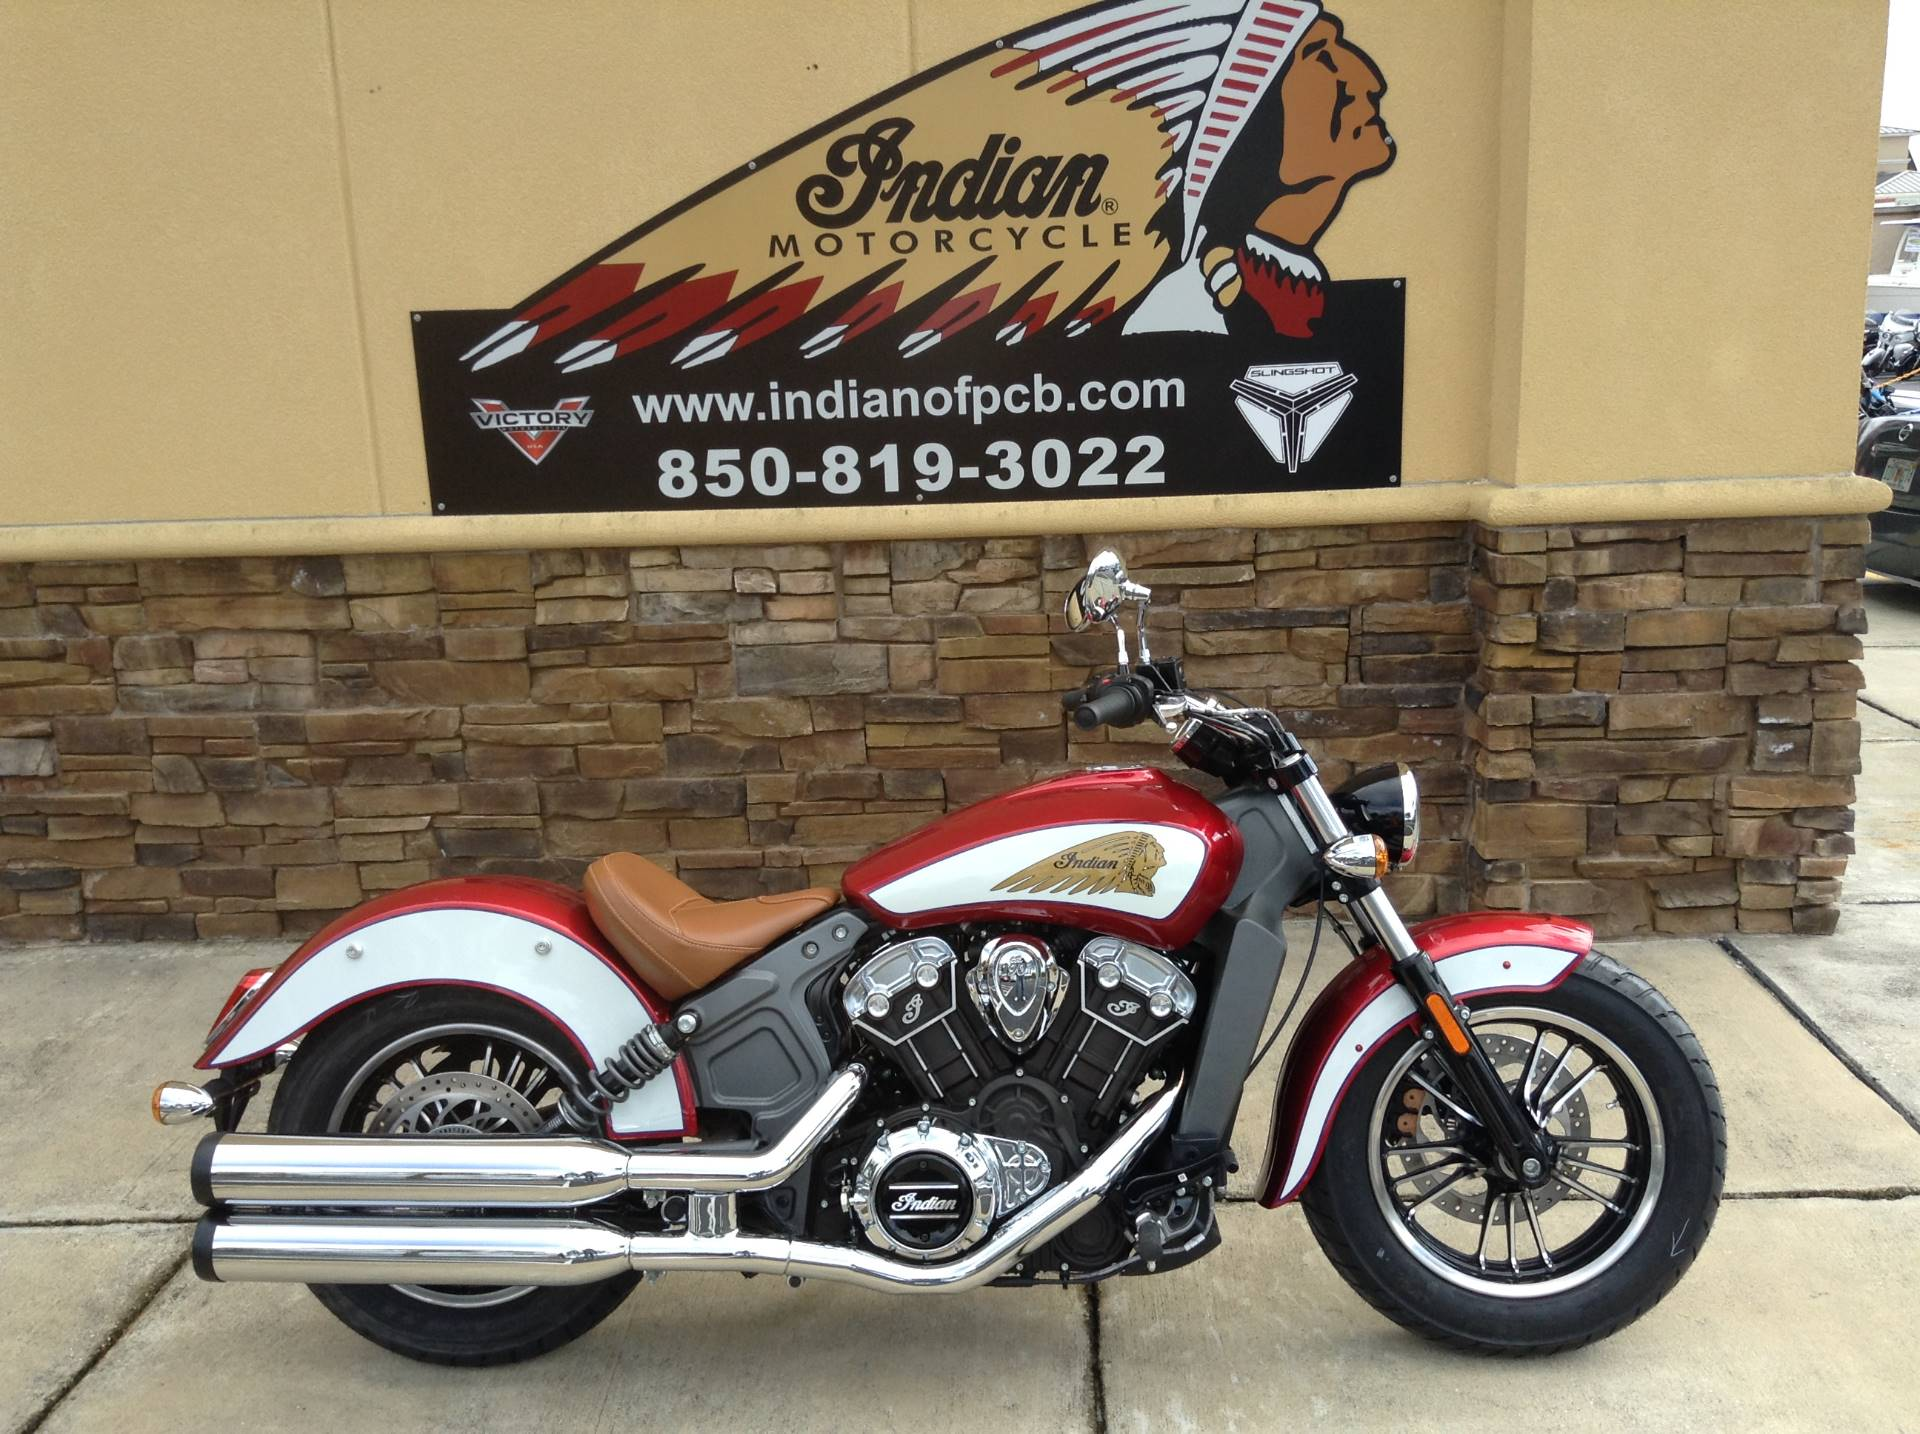 2019 Indian SCOUT ABS  ICON SERIES in Panama City Beach, Florida - Photo 1